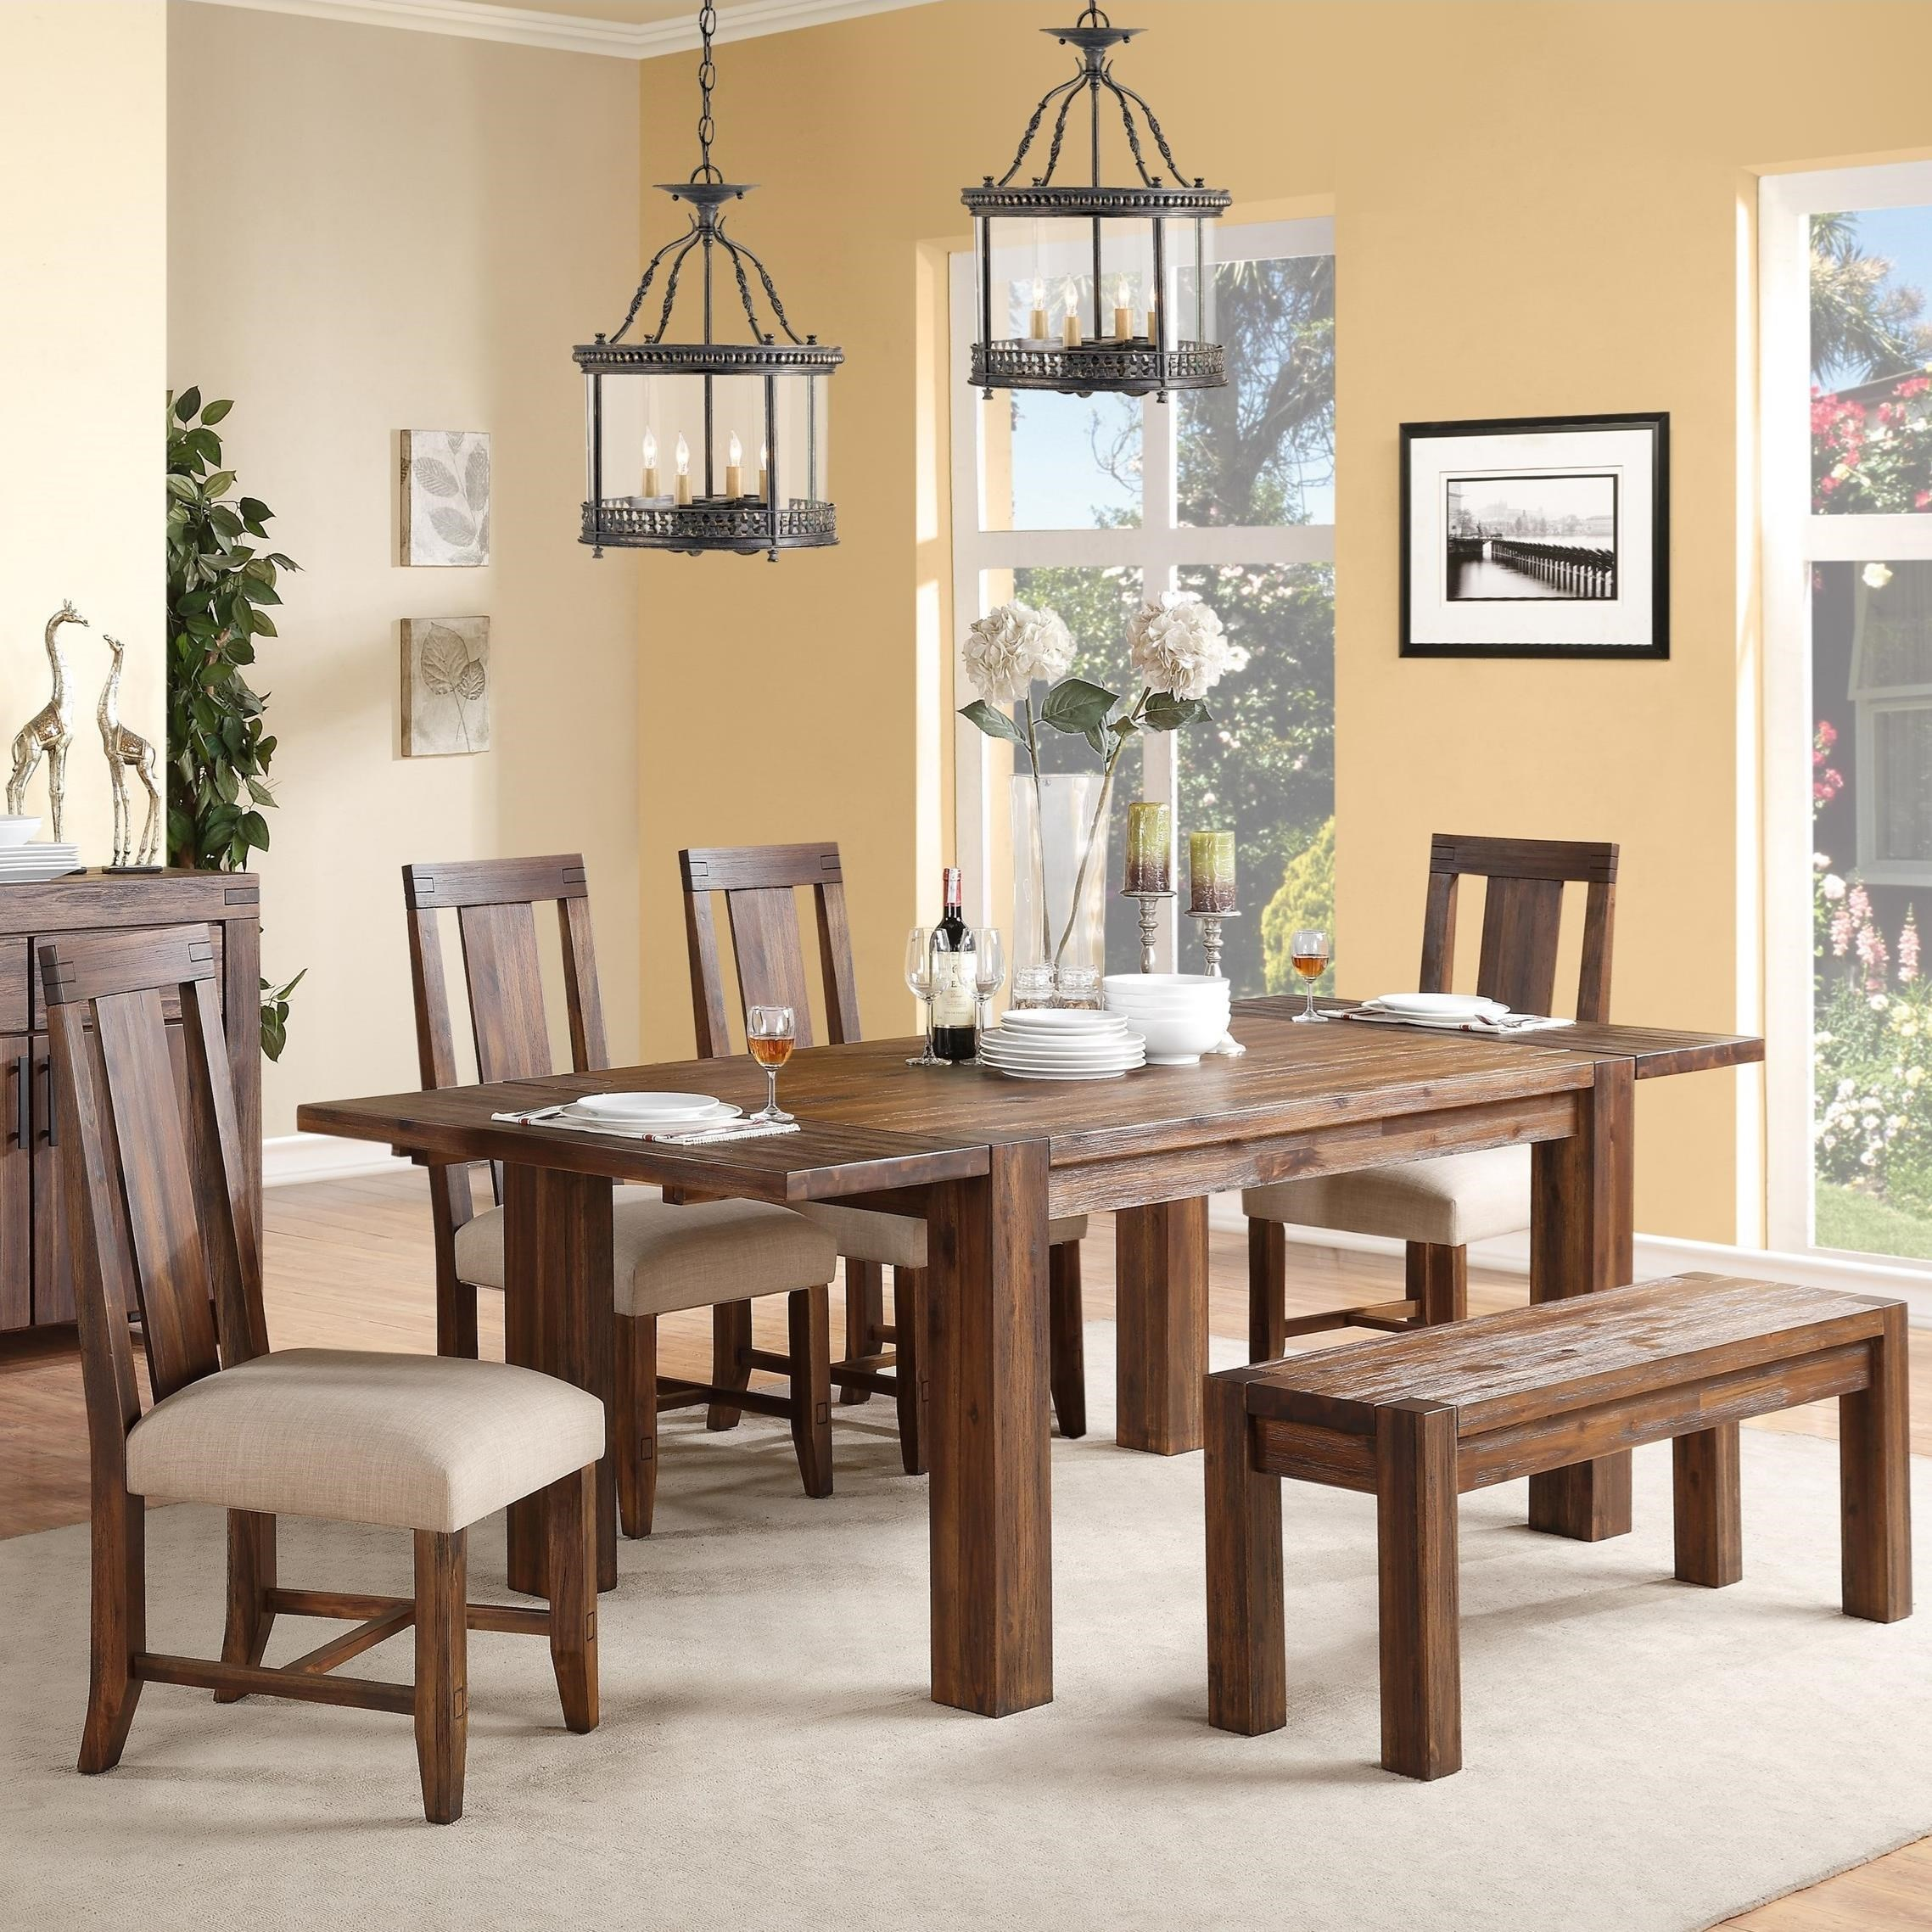 Camden Fields Dining Table U0026 Chair Set With Bench